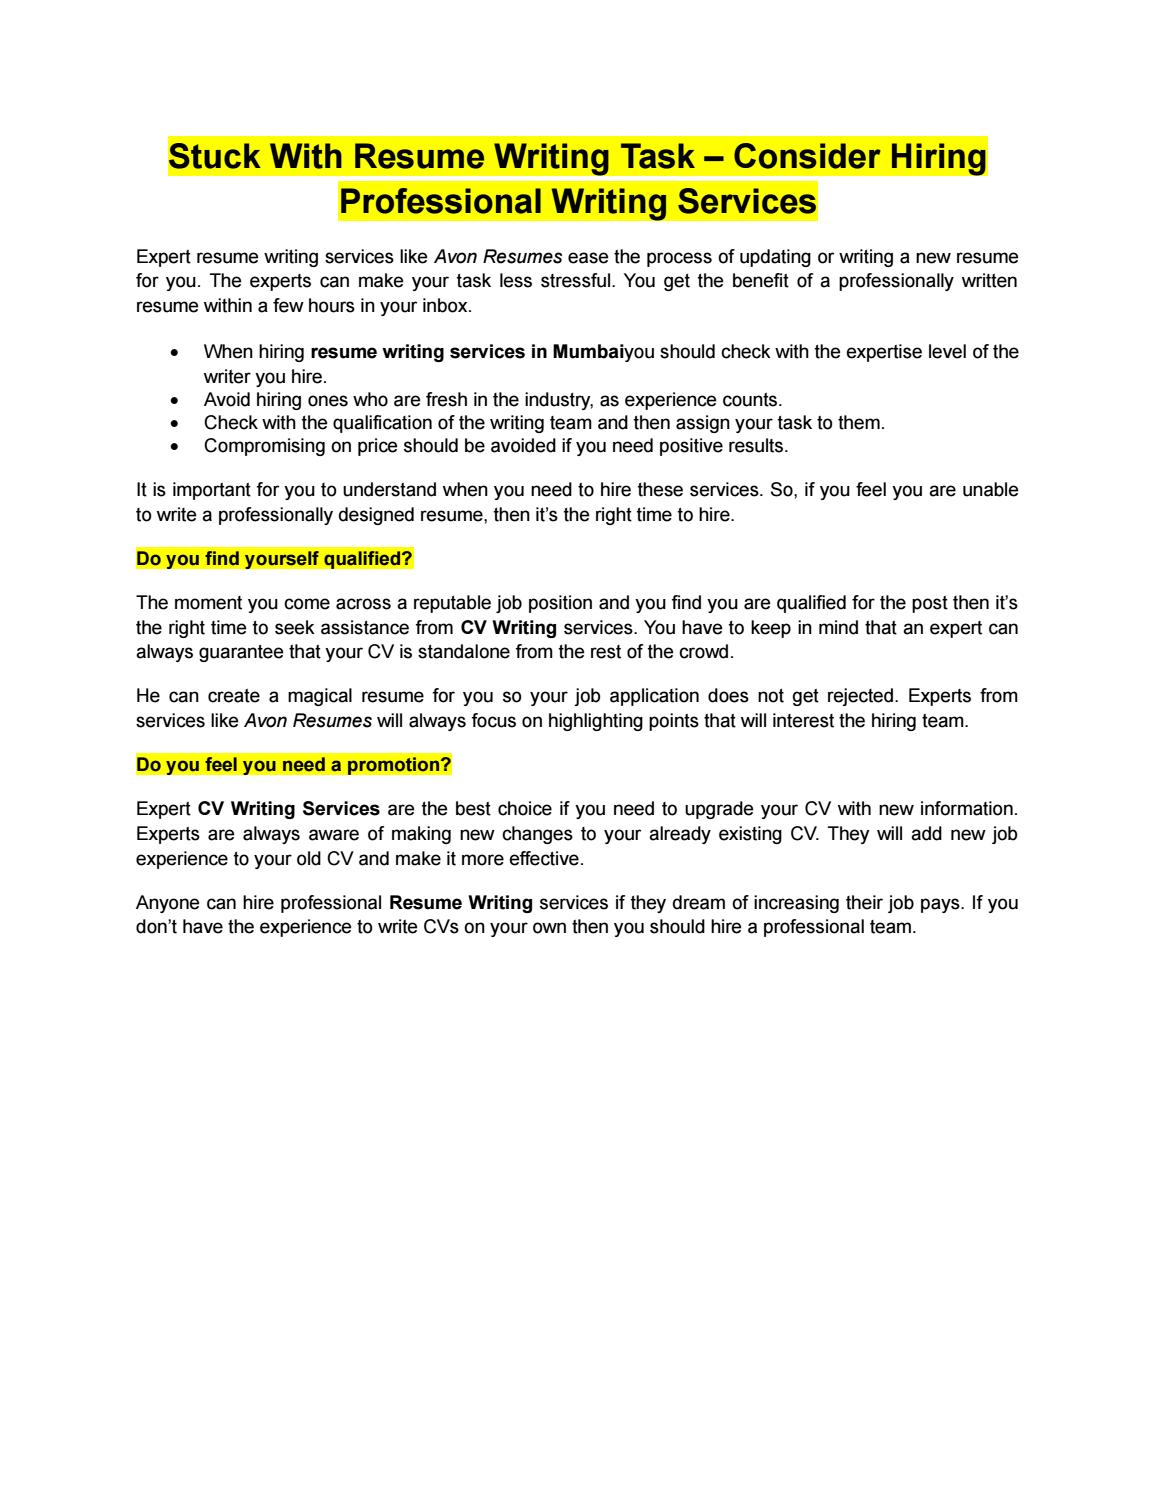 stuck with resume writing task by avon resumes issuu hire professional writer tidyforms Resume Hire A Professional Resume Writer